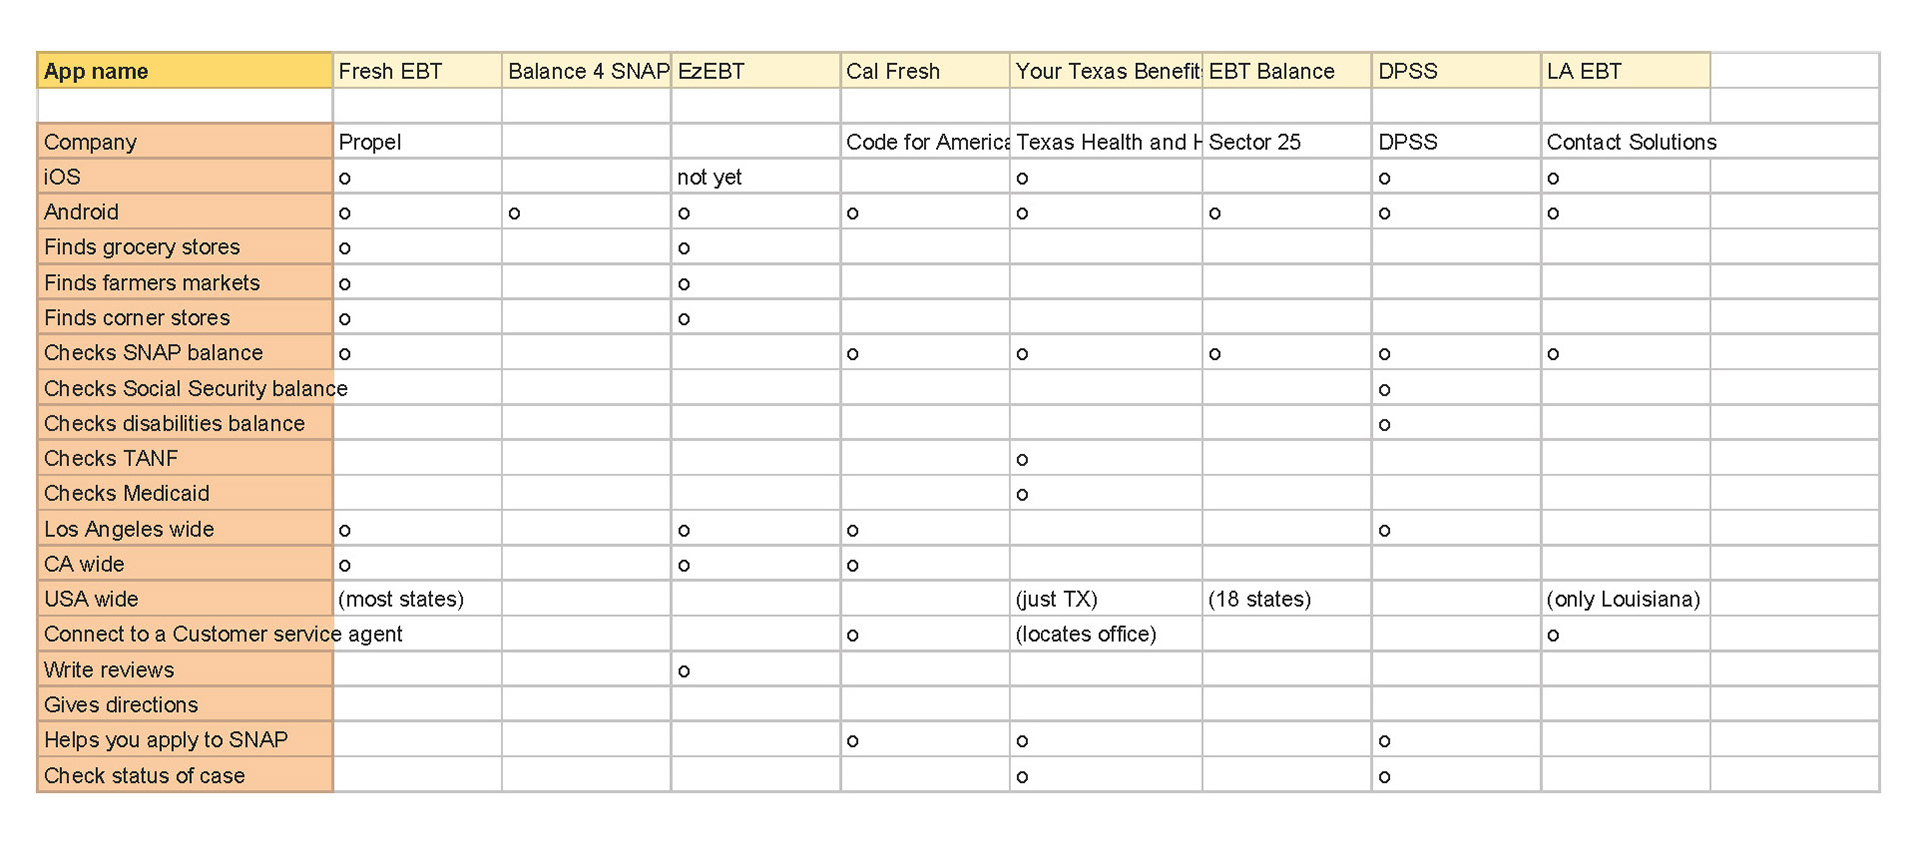 A spreadsheet that compares different apps that work with EBT cards.